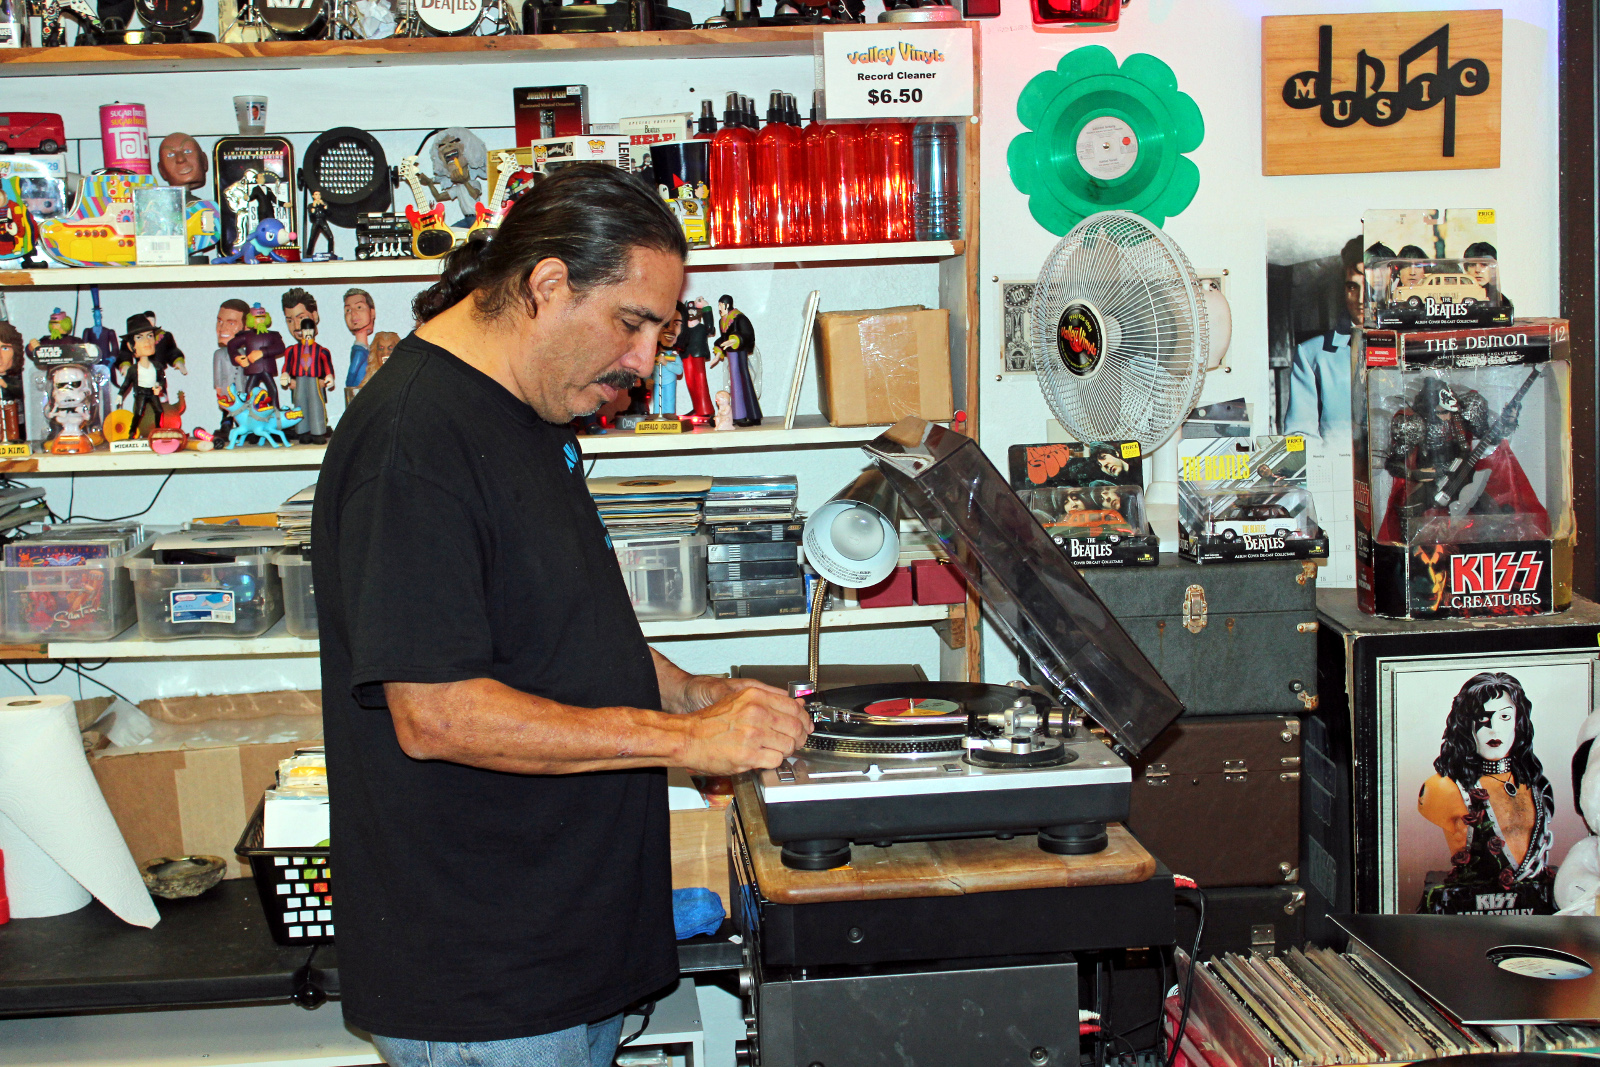 Vinyl Spins Back into Style - Valley Business Report